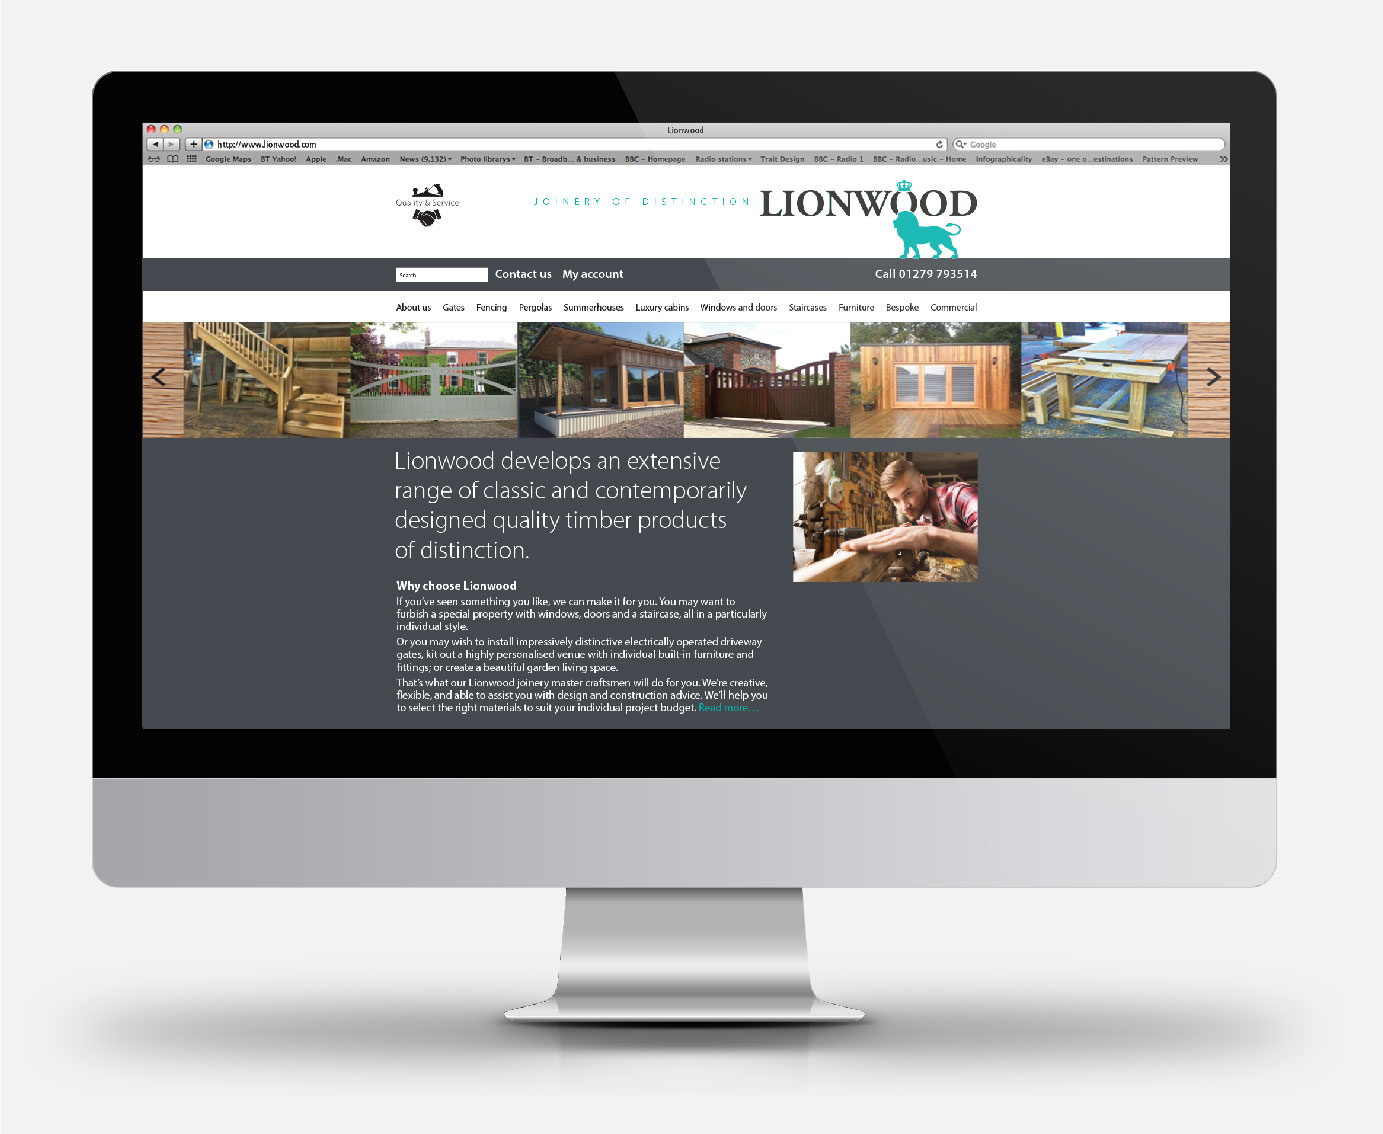 LIONWOOD-PROJECT-PAGE-PR_13